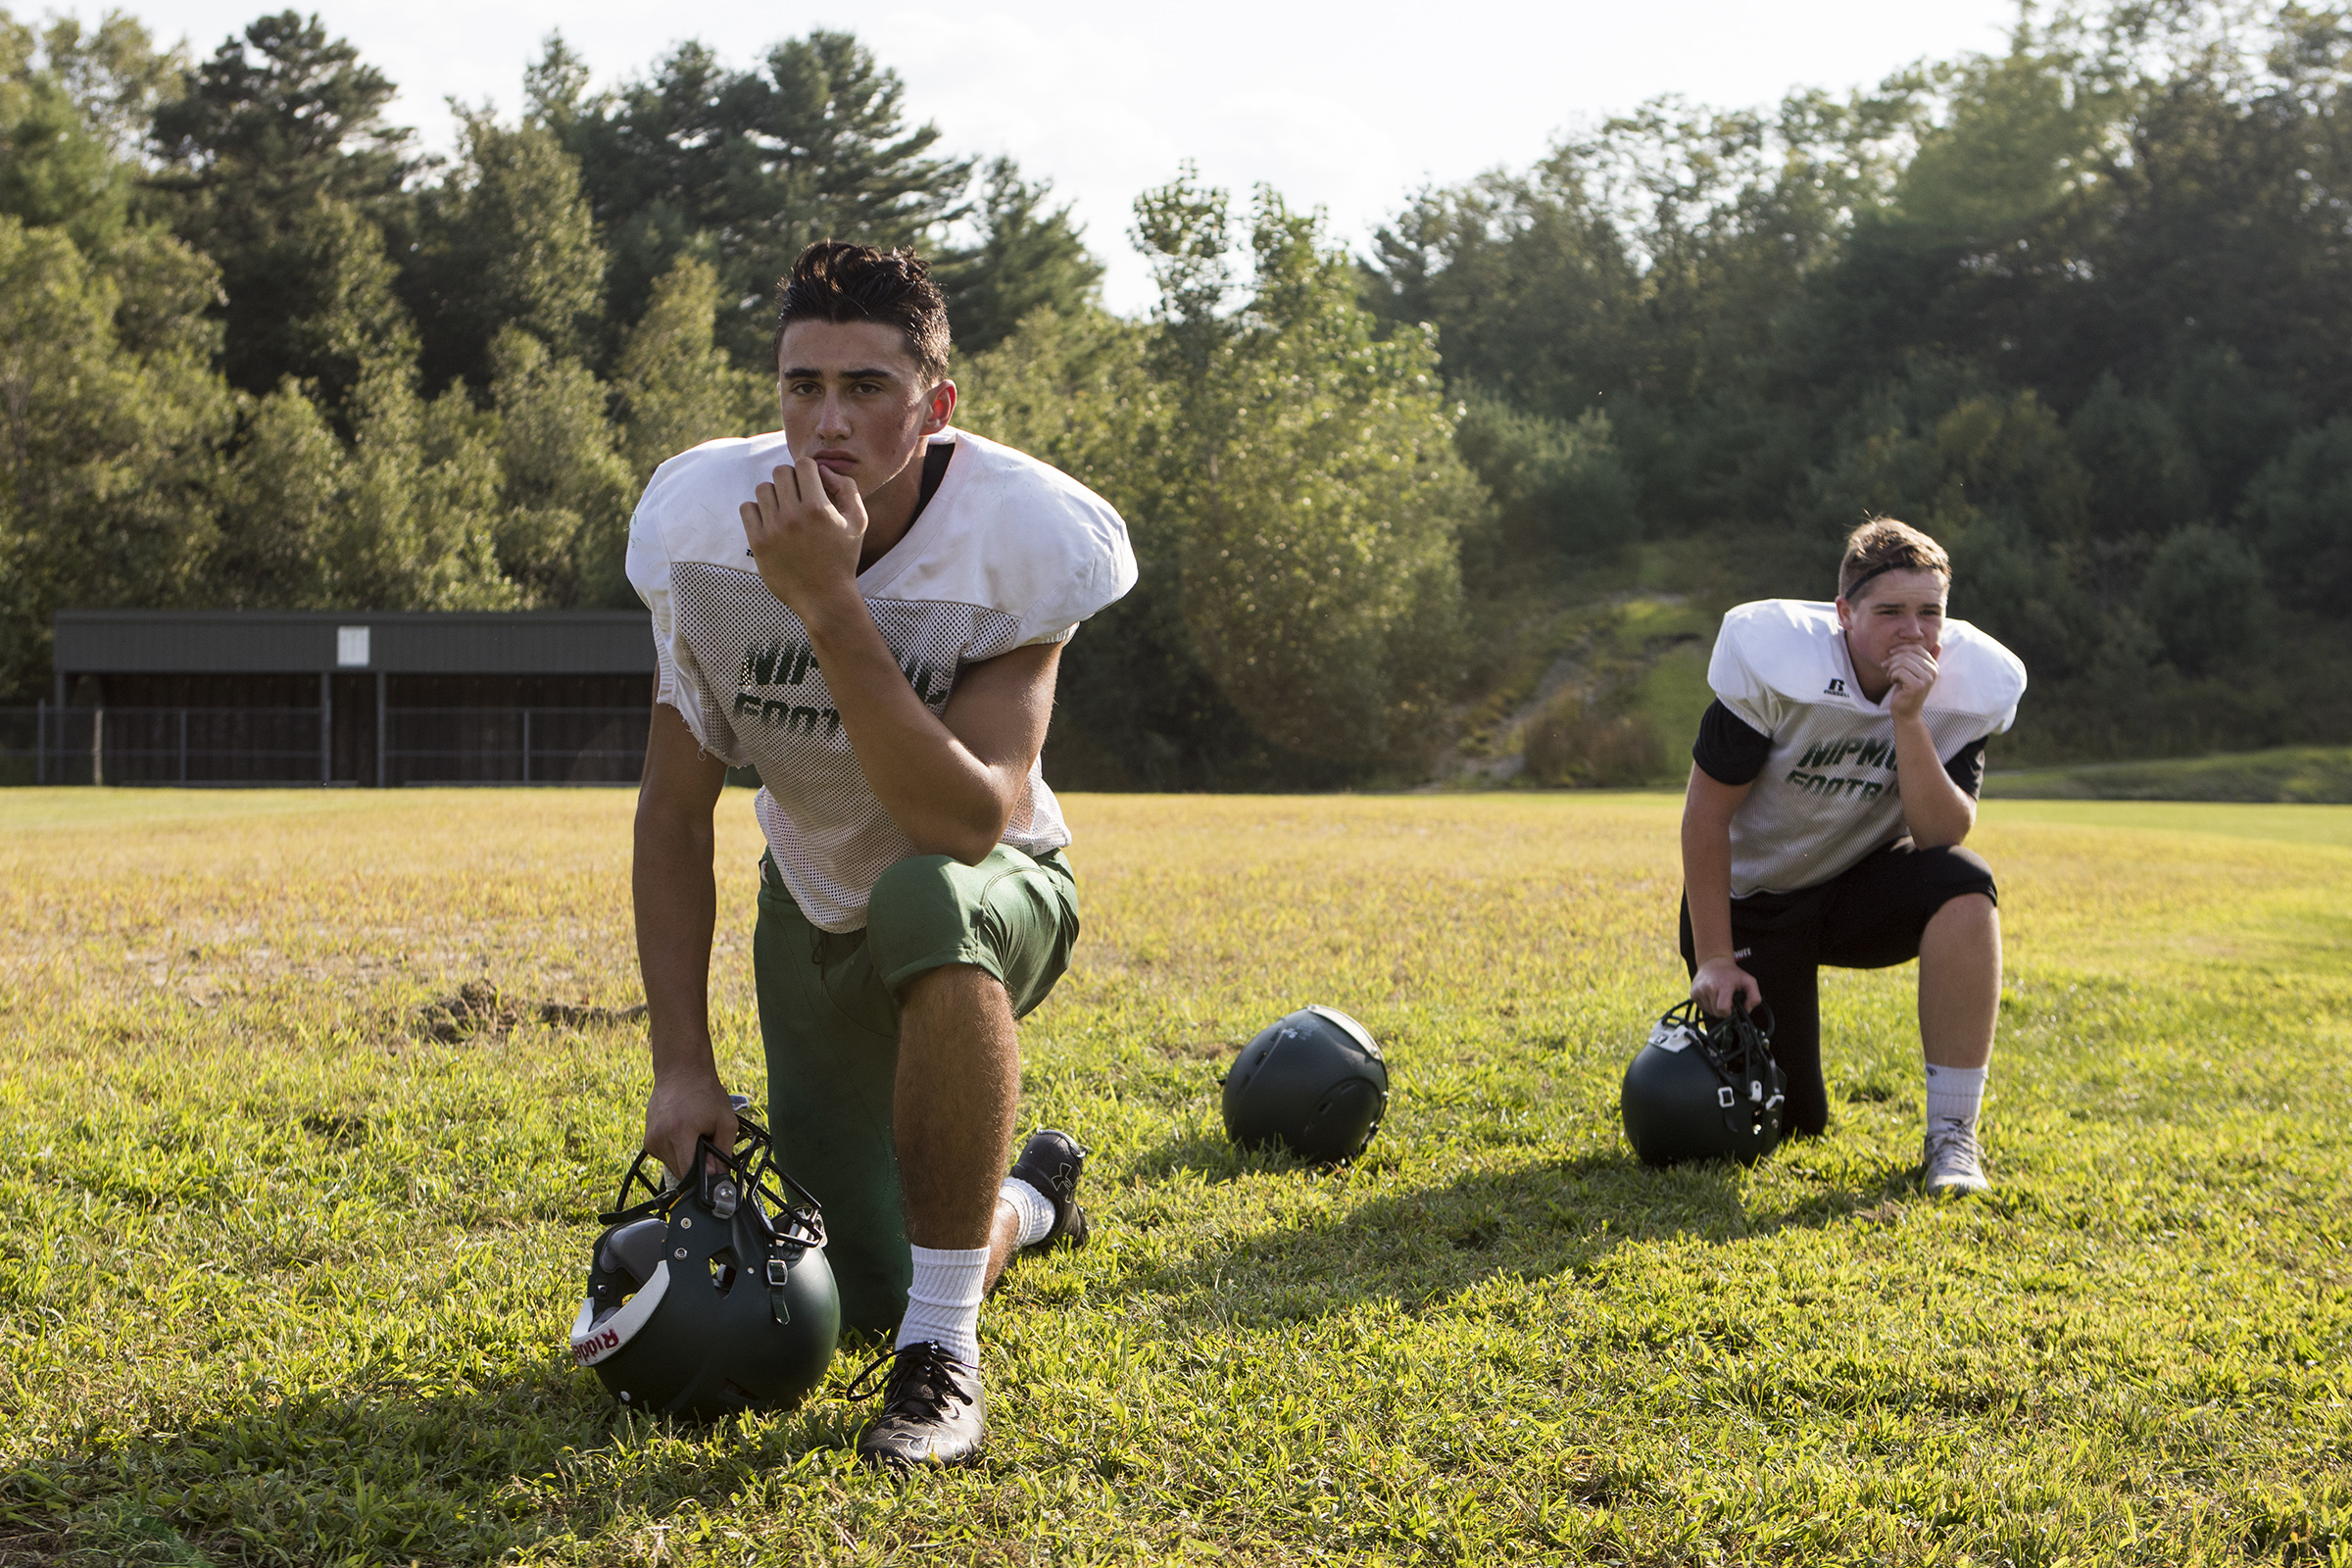 Nipmuc junior Nate Gould, left, and sophomore Joey Leclaire take a knee after their senior captain was injured during football practice at Nipmuc Regional High School in Upton on Aug. 24, 2018.